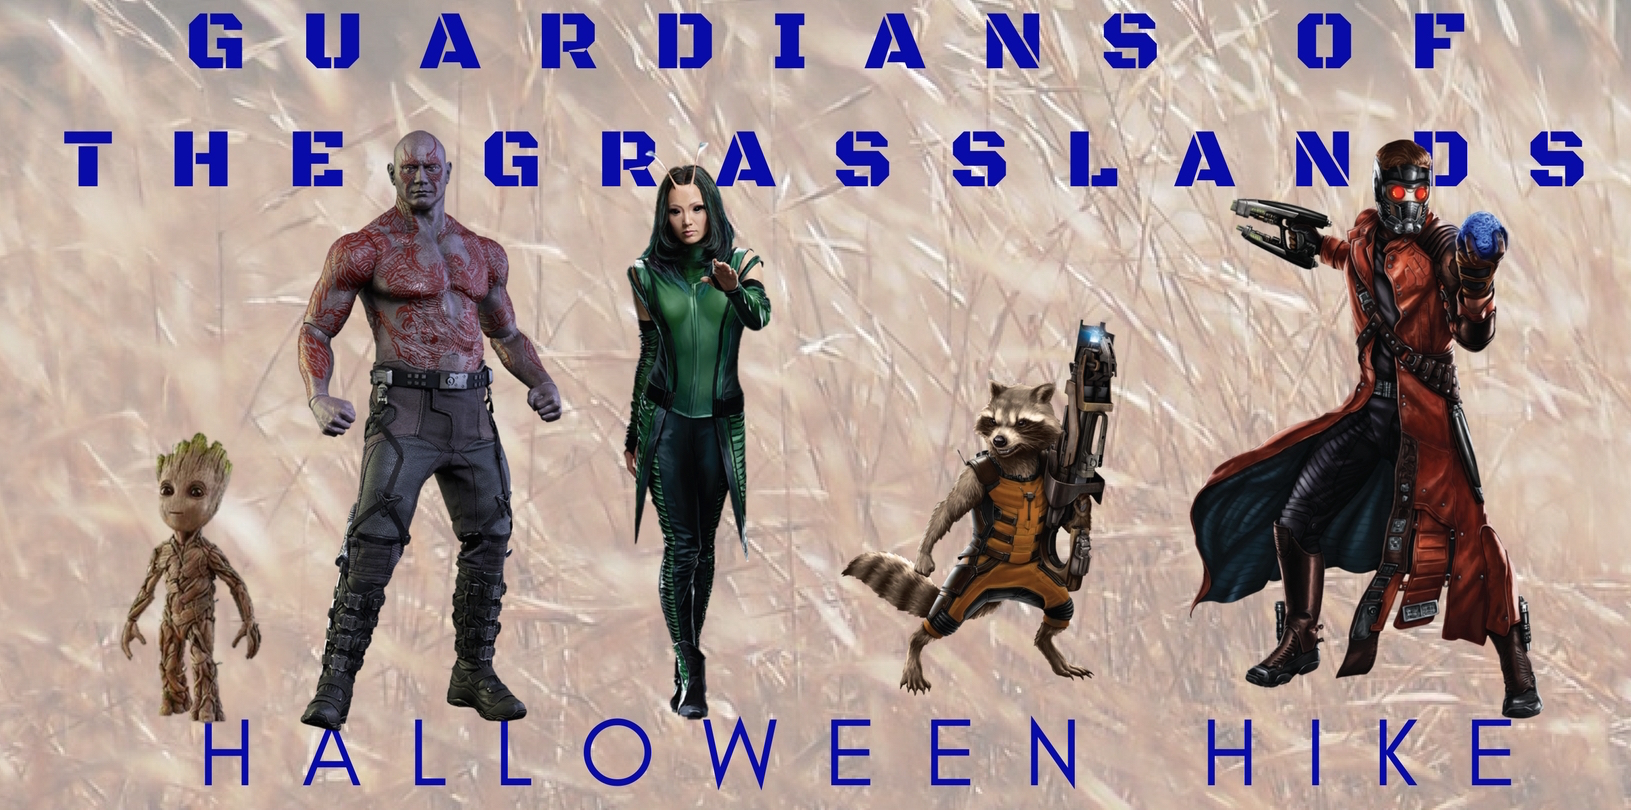 Copy-of-Guardians-Of-the-Grasslands